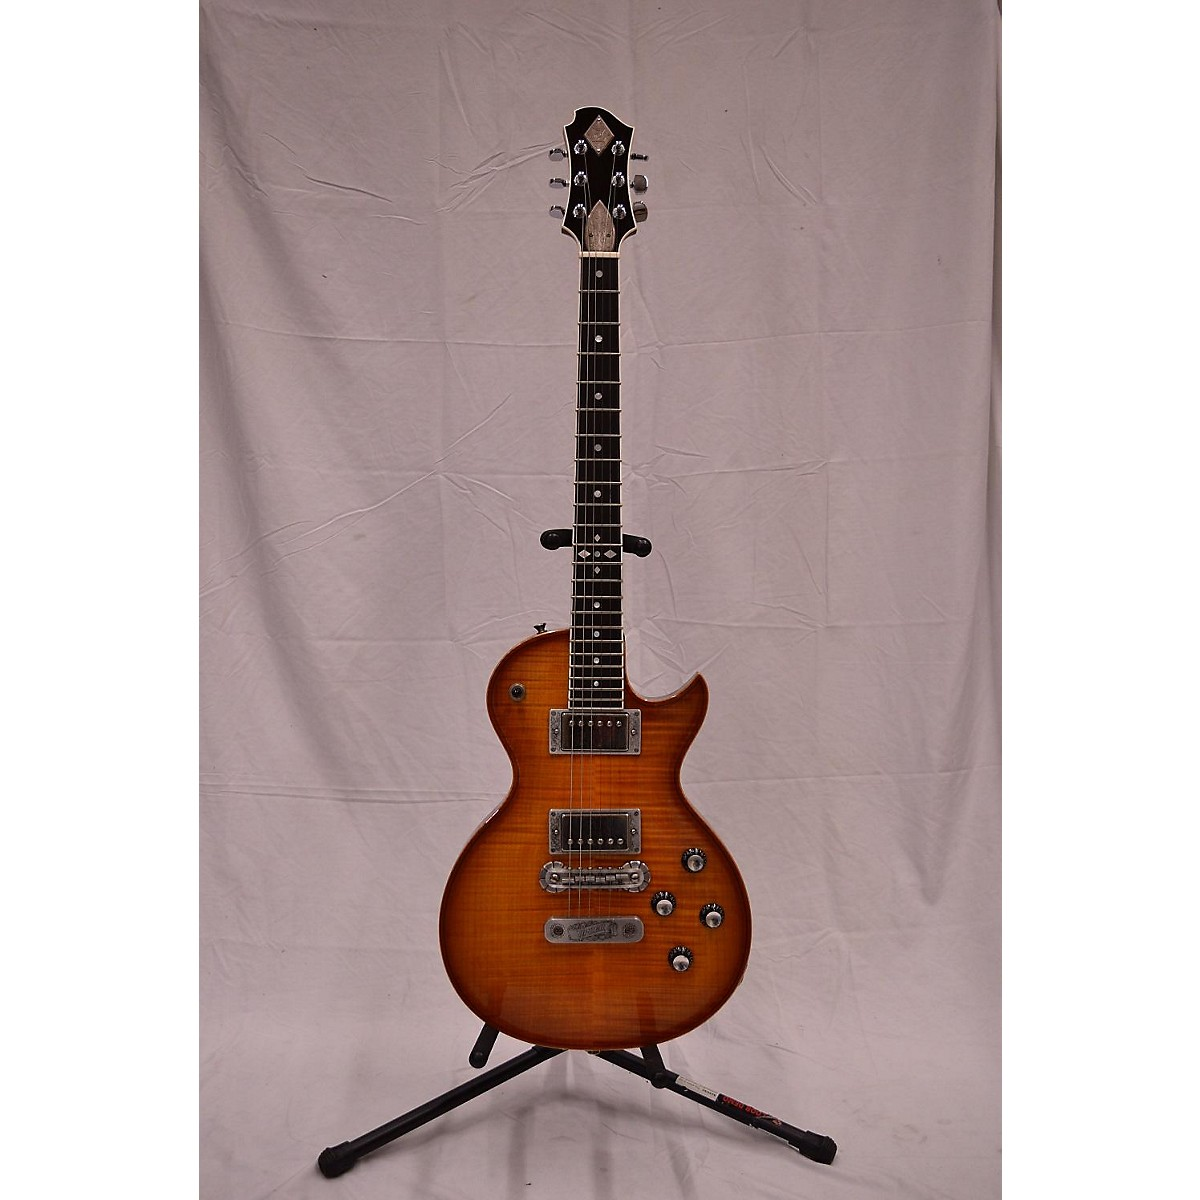 Zemaitis Greco GZ-3300 Solid Body Electric Guitar